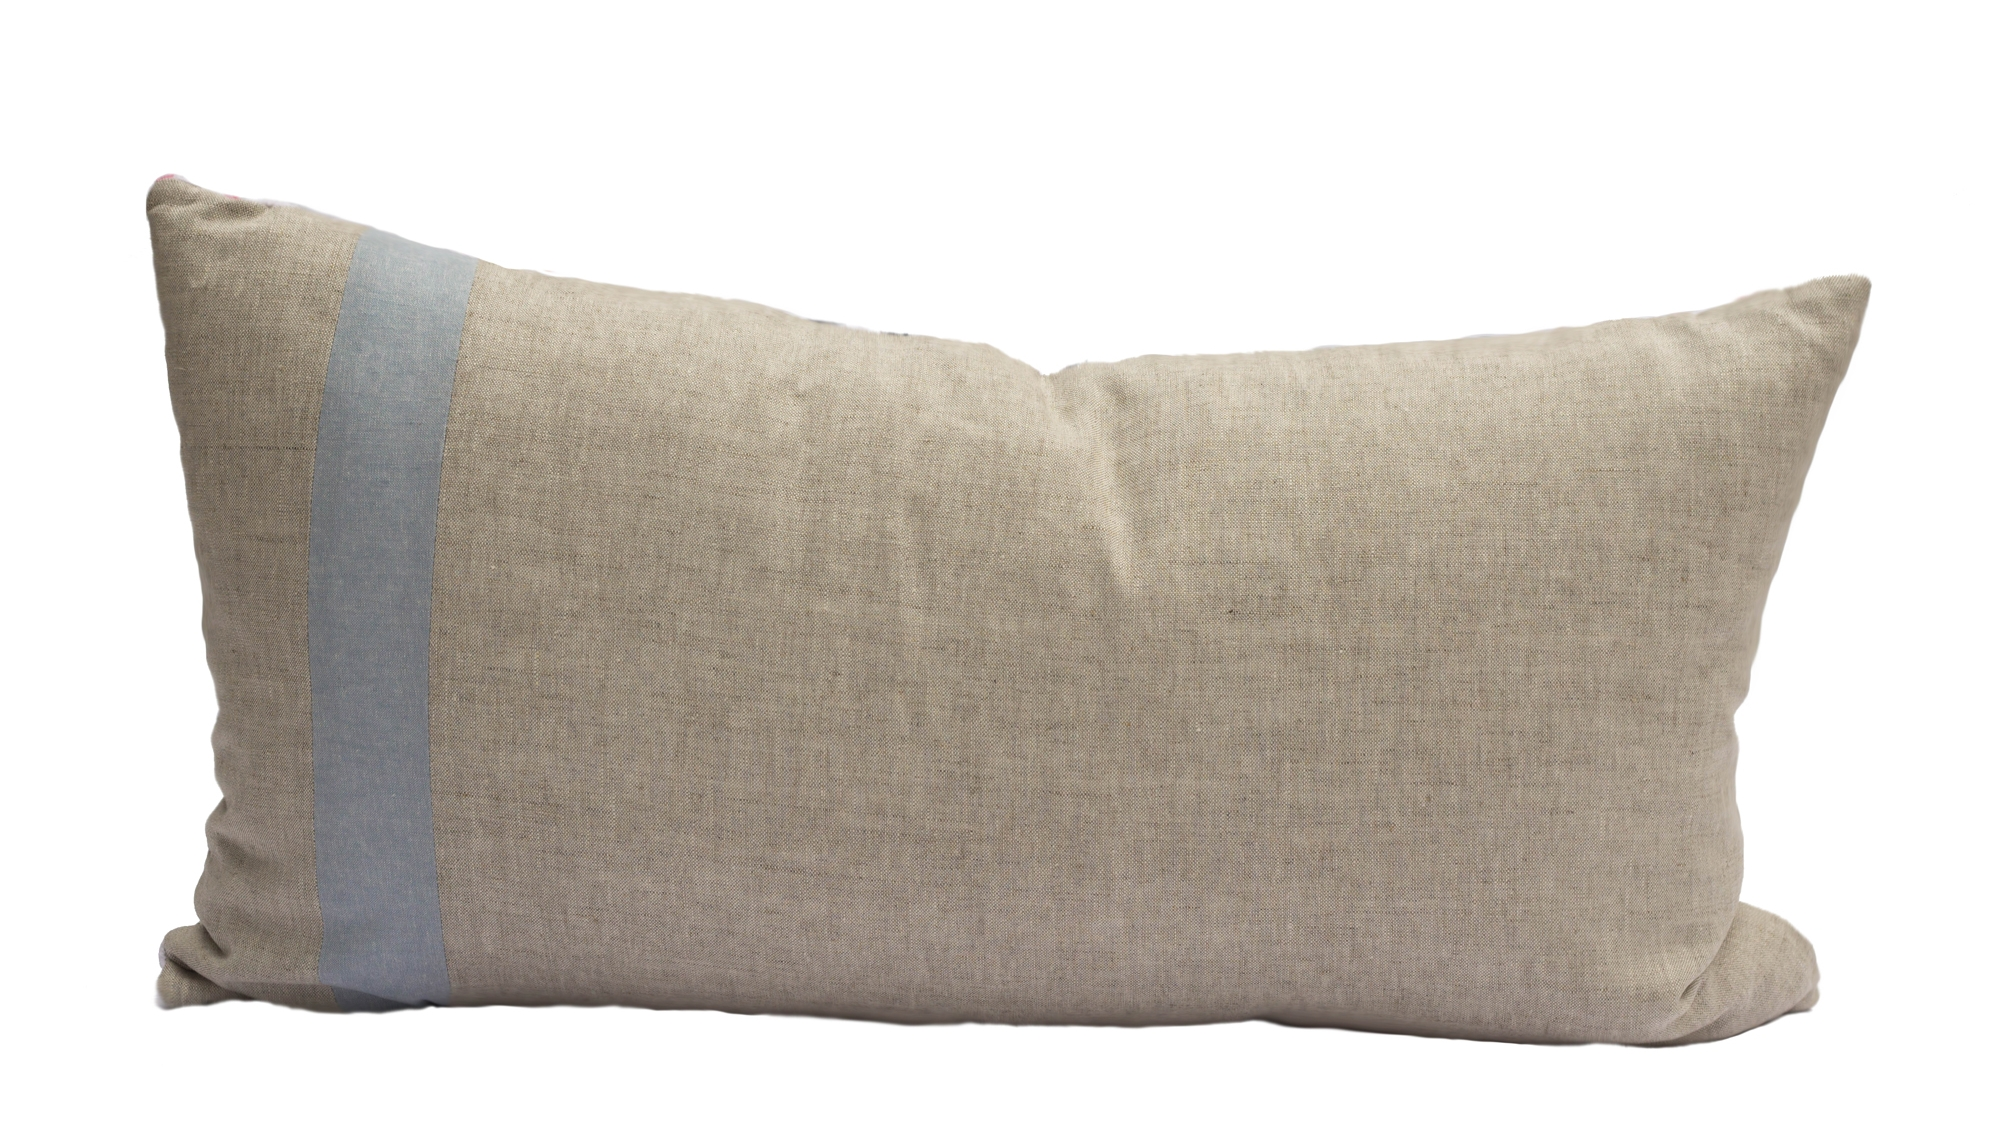 extra-large square quilted pillow — goods by burnham design